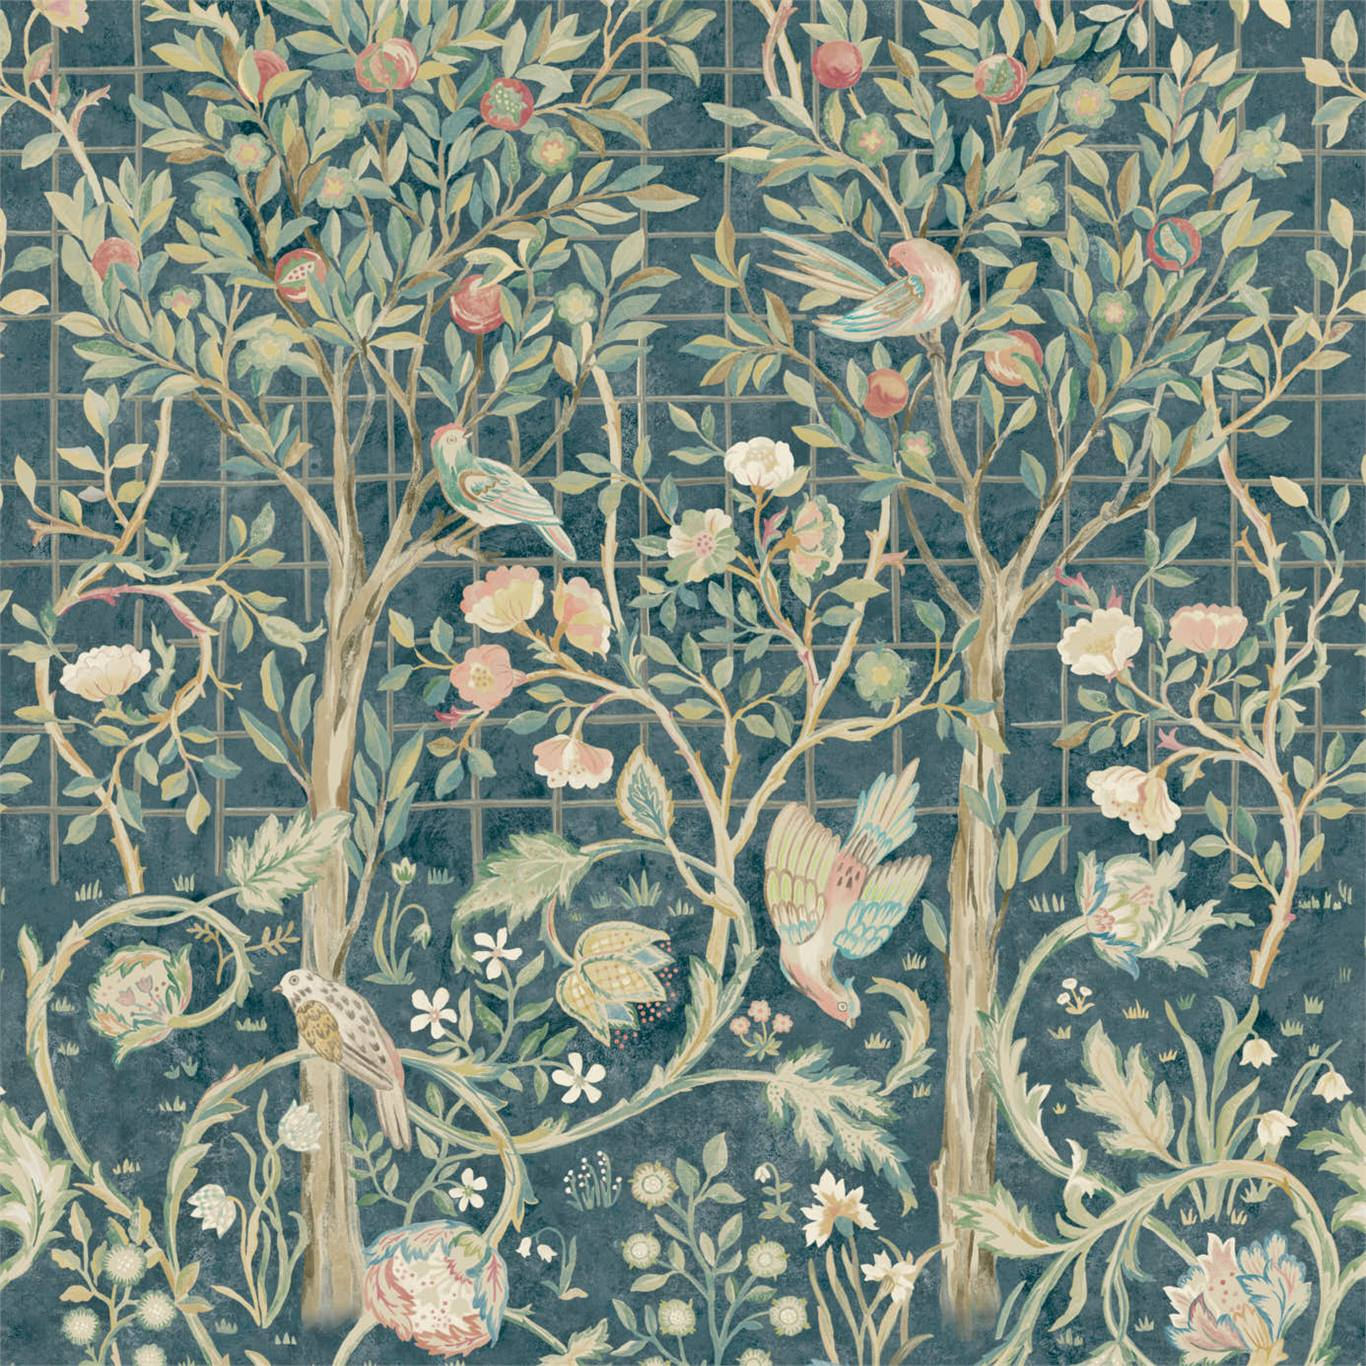 Inspired by embroidered bed hangings originally created by May Morris for her fathers bed c.1893 this newly drawn wallpaper version showcases Mays spectacular design of birds and flowerheads trailing a central fruit tree. Produced as a 3m panel (or 4m on special order) Melsetter from Morris & Co. is a hand painted fresco style design with a garden room feel. Available in two colourways: Indigo/Rose and Ivory/Sage